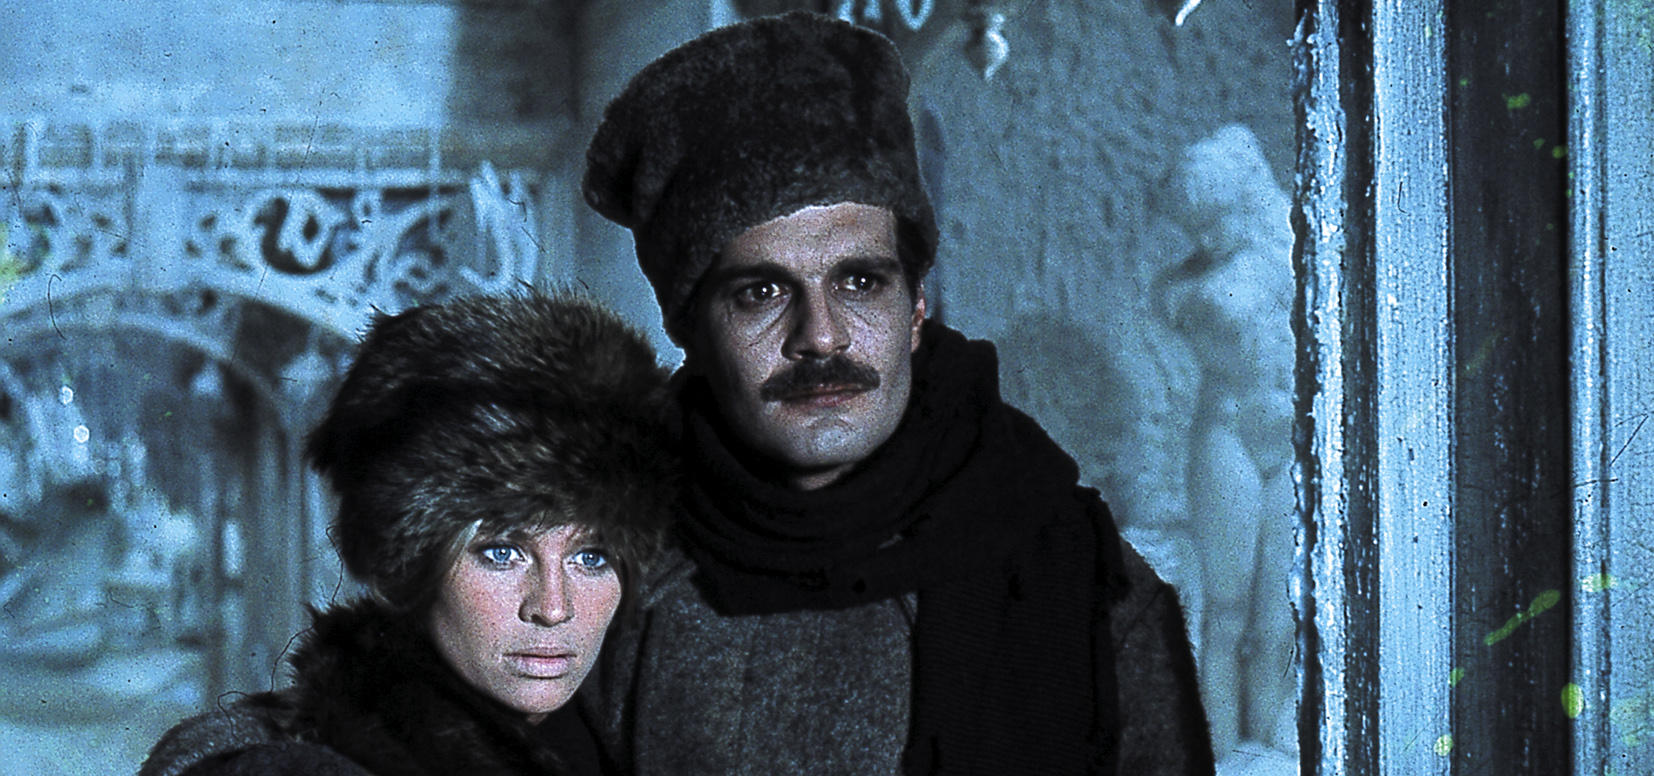 UFV to Mark 60th Anniversary of Dr. Zhivago with Multidisciplinary Forum